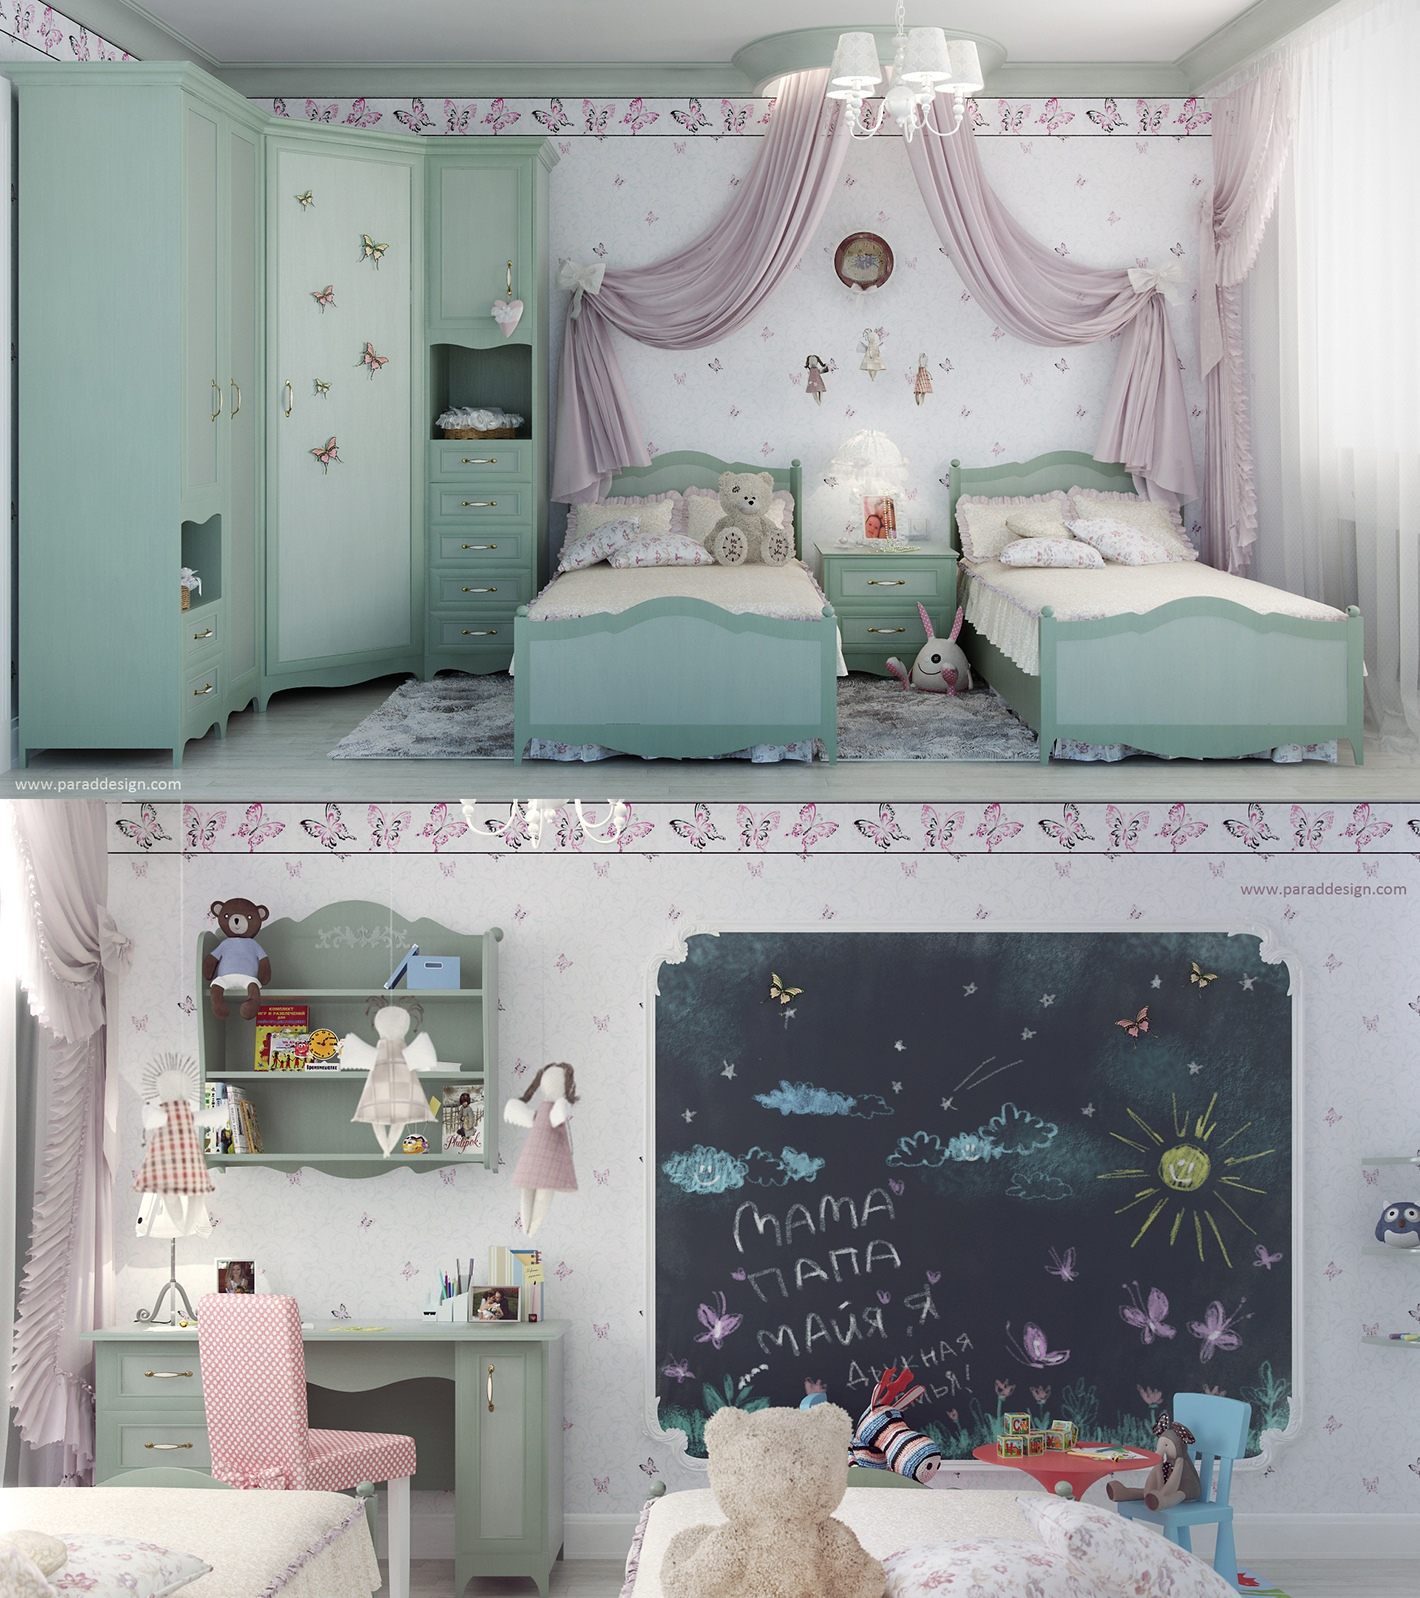 2 little girls bedroom 7 interior design ideas Decorating little girls room